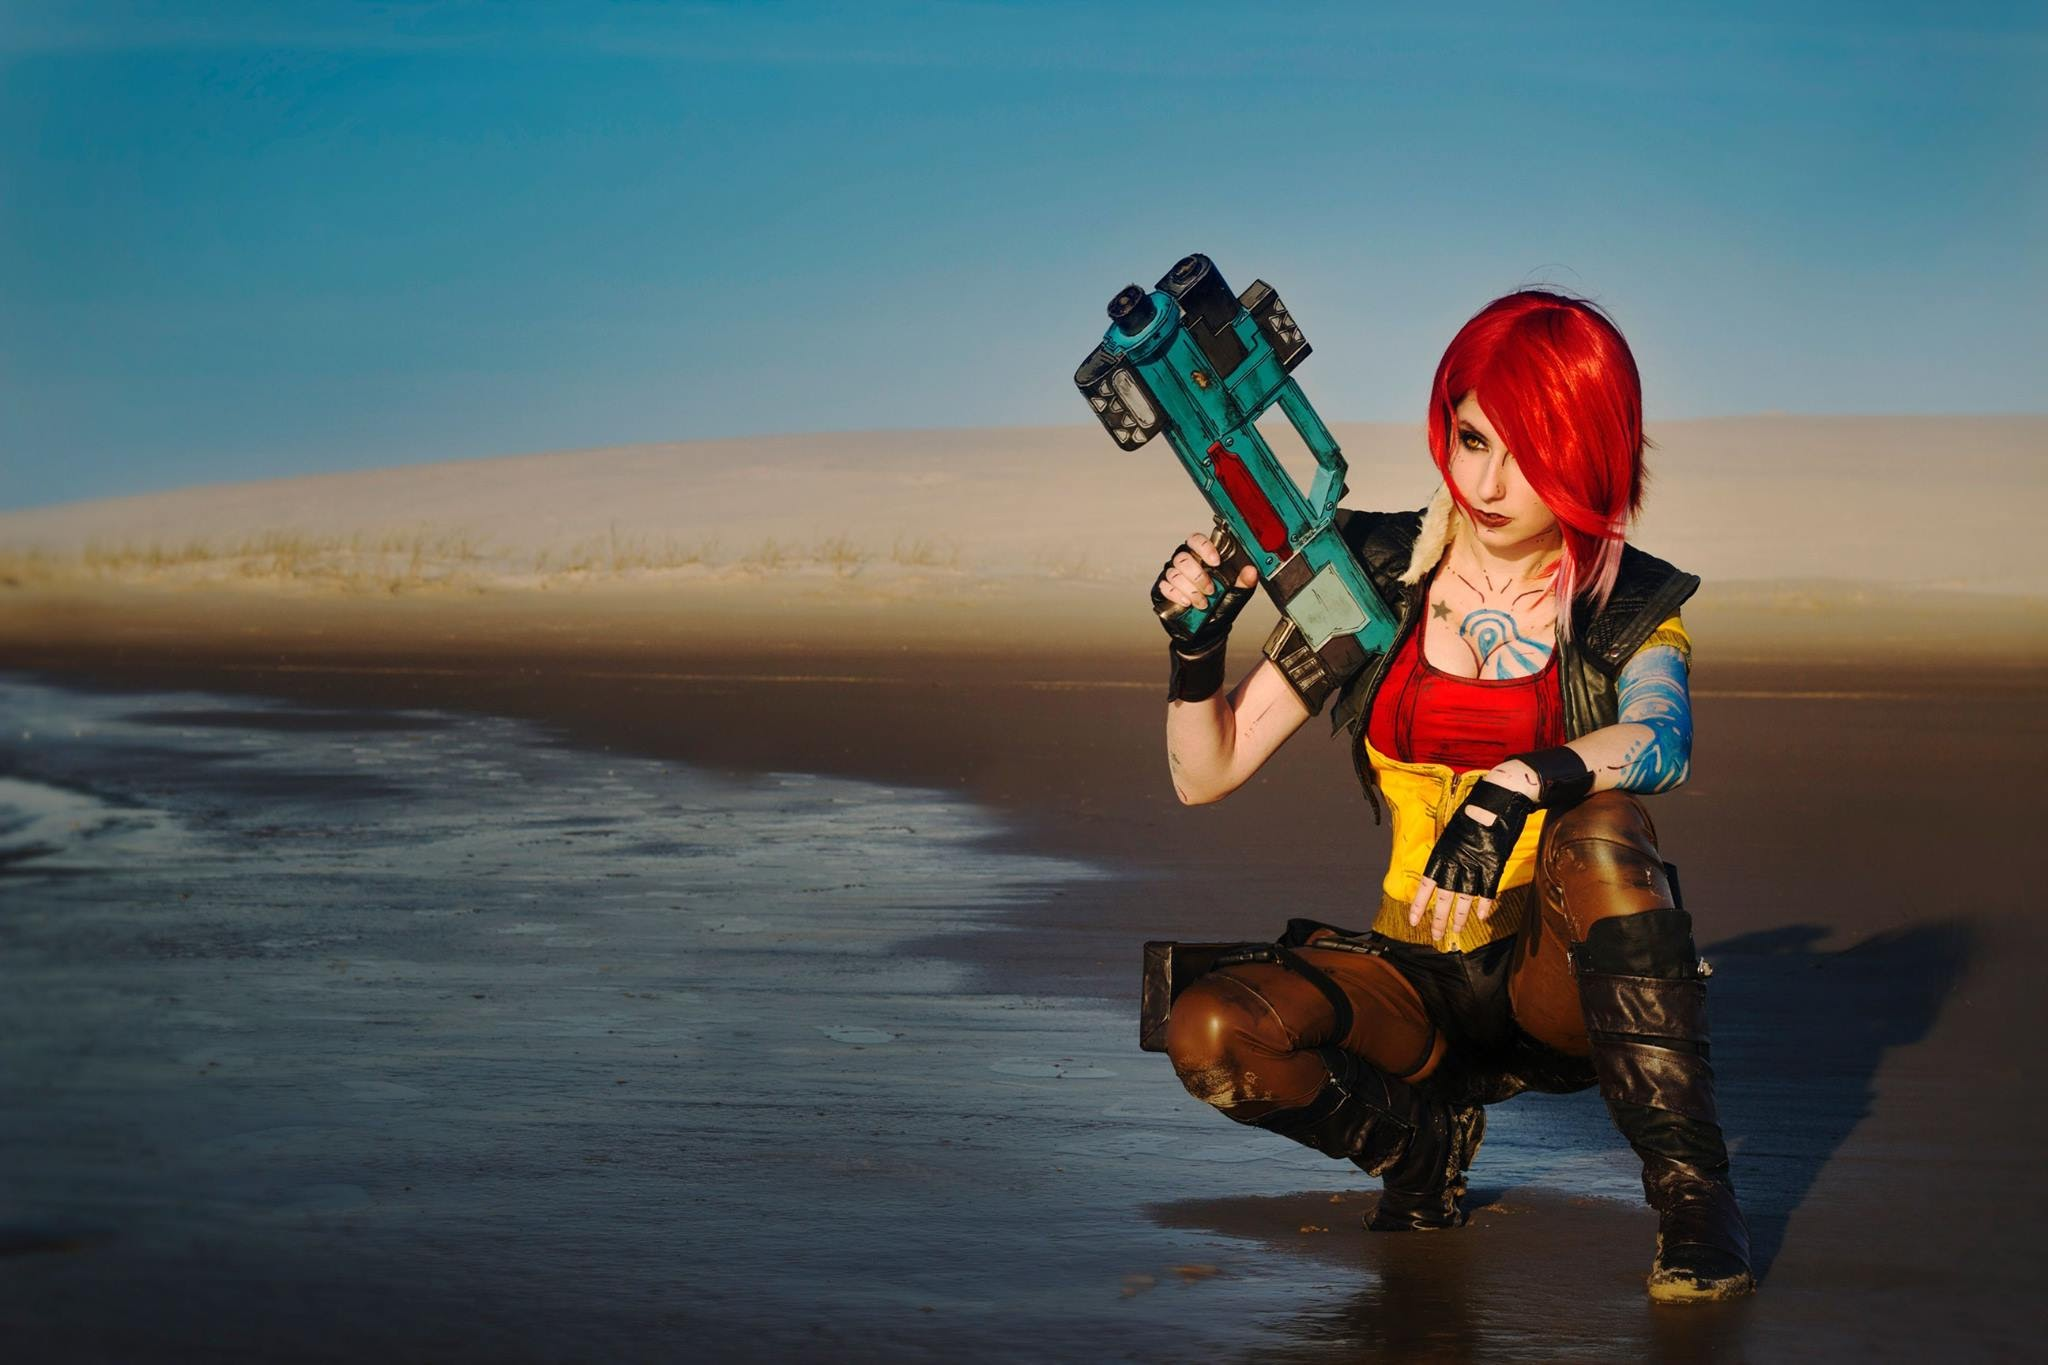 Lilith Cosplay - Giu - FB